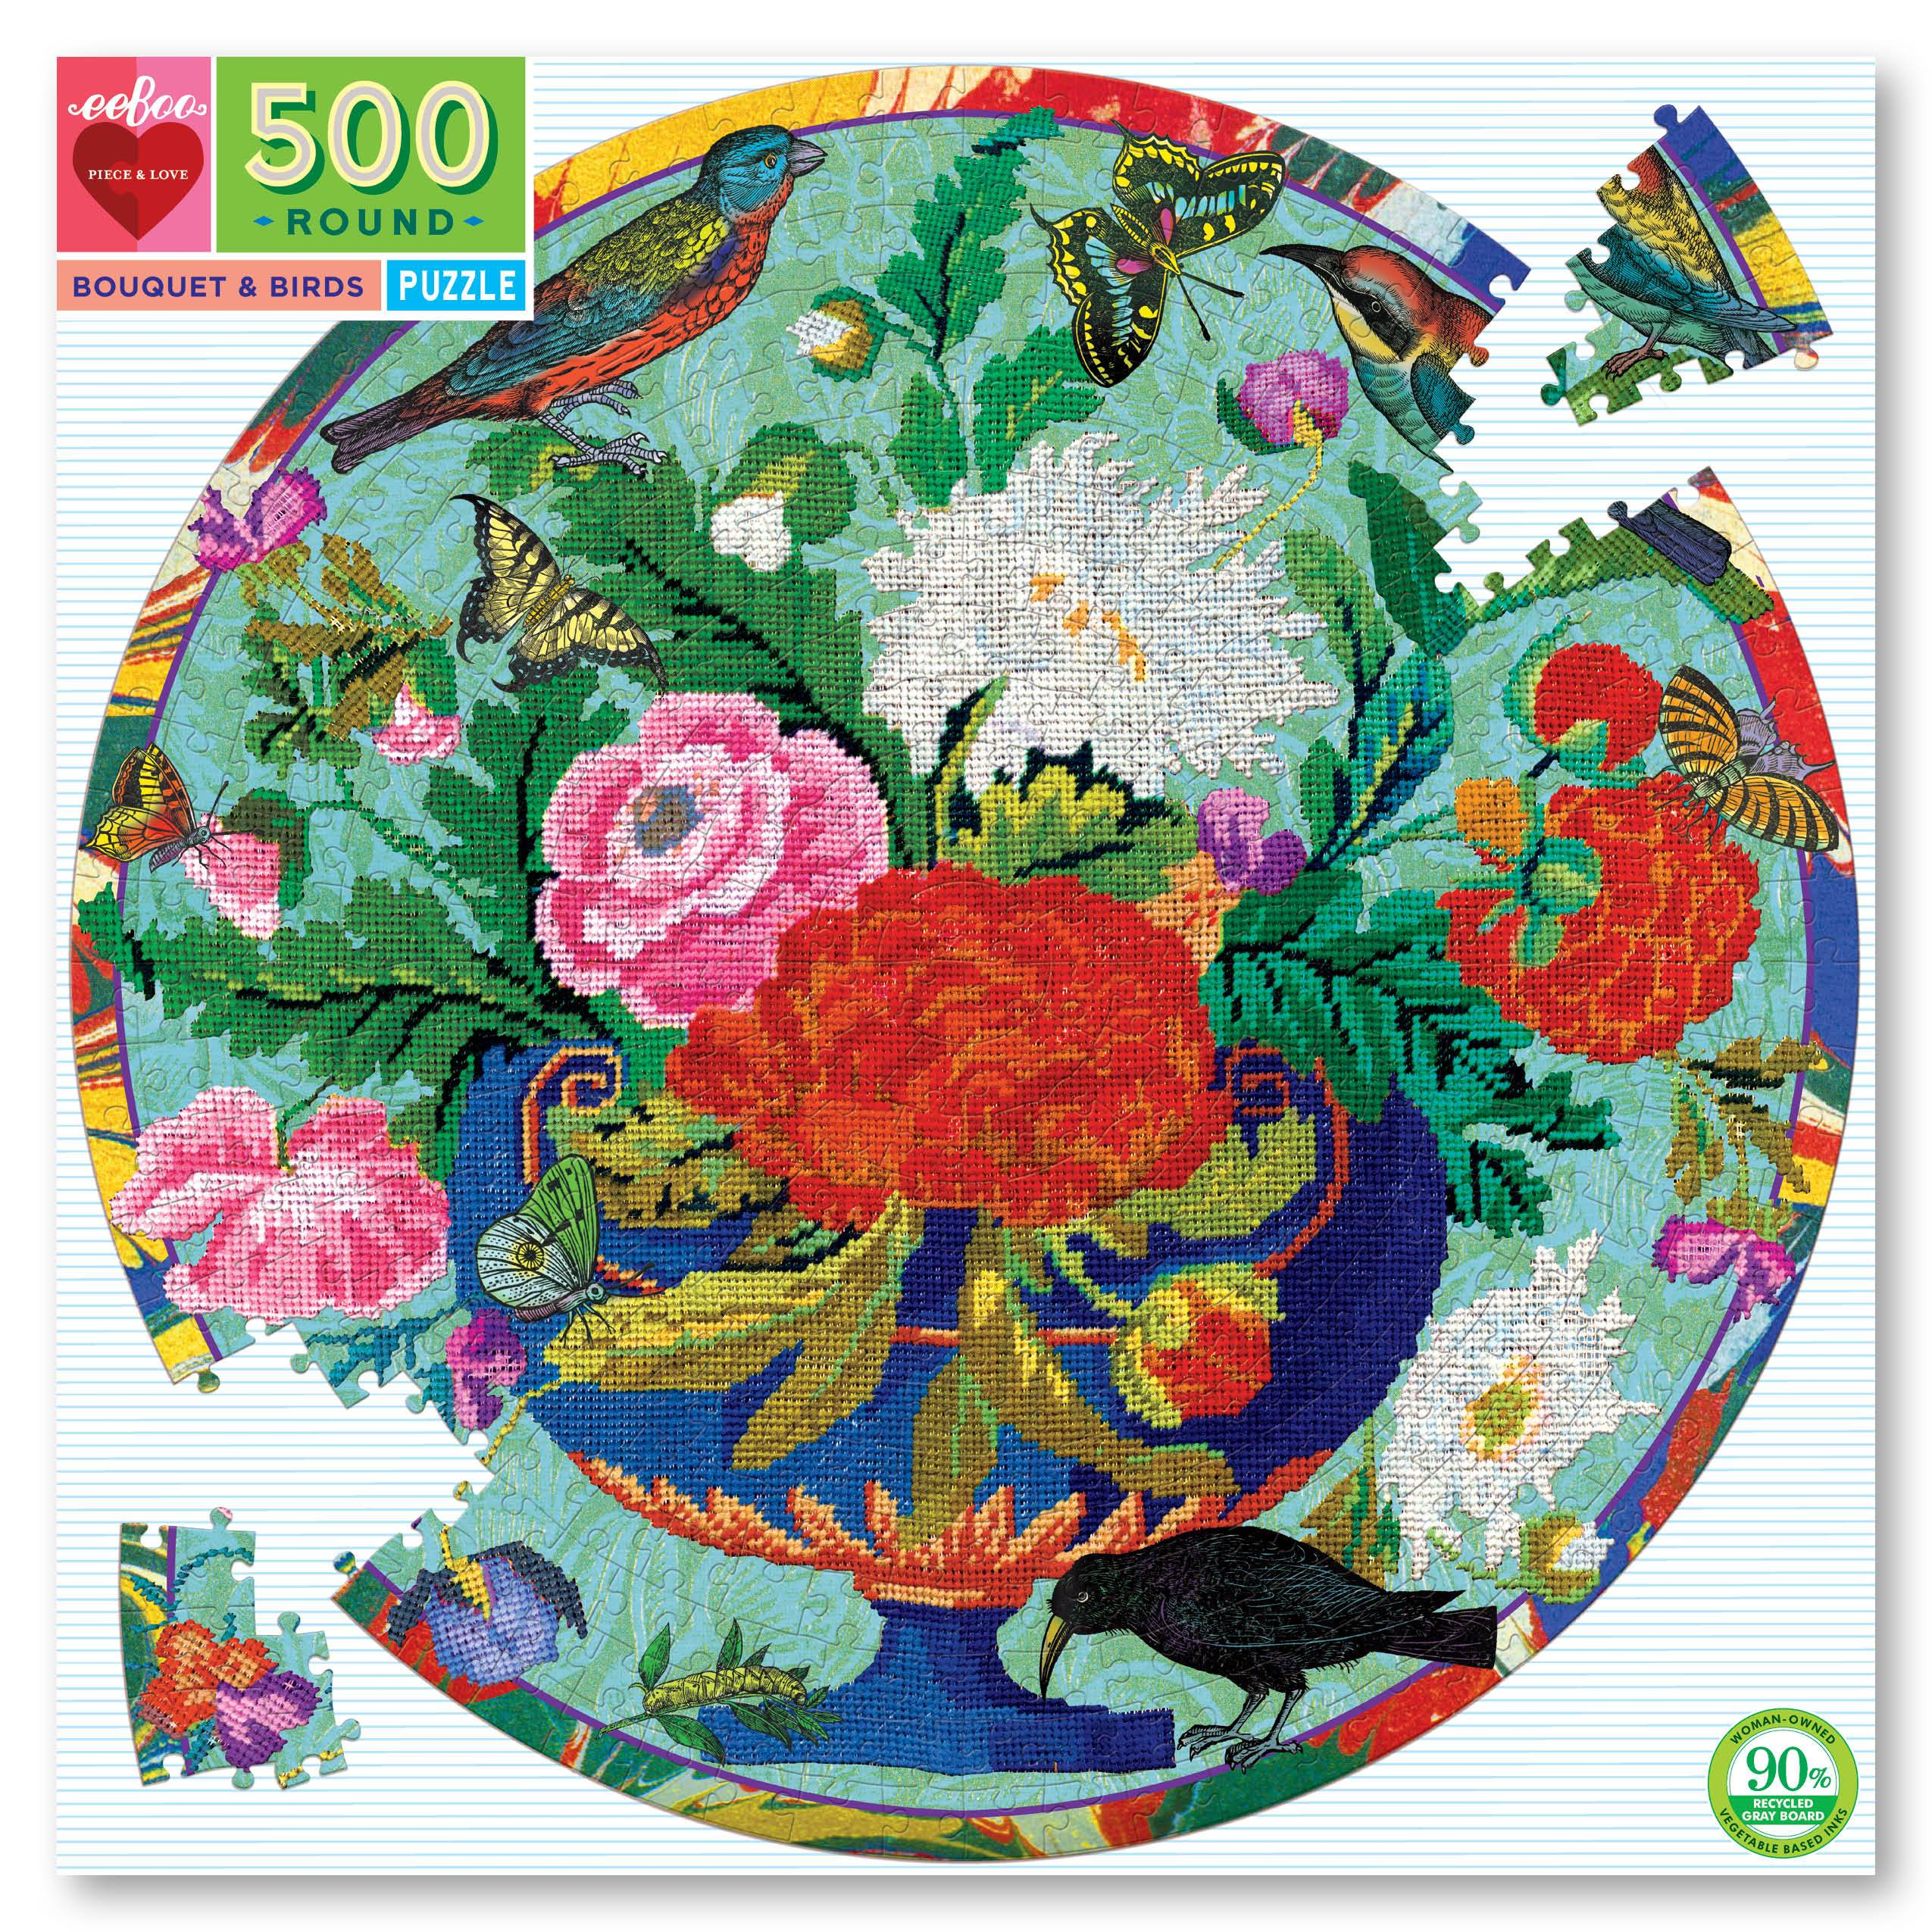 Bouquet & Birds 500 Piece Round Jigsaw Puzzle by eeboo